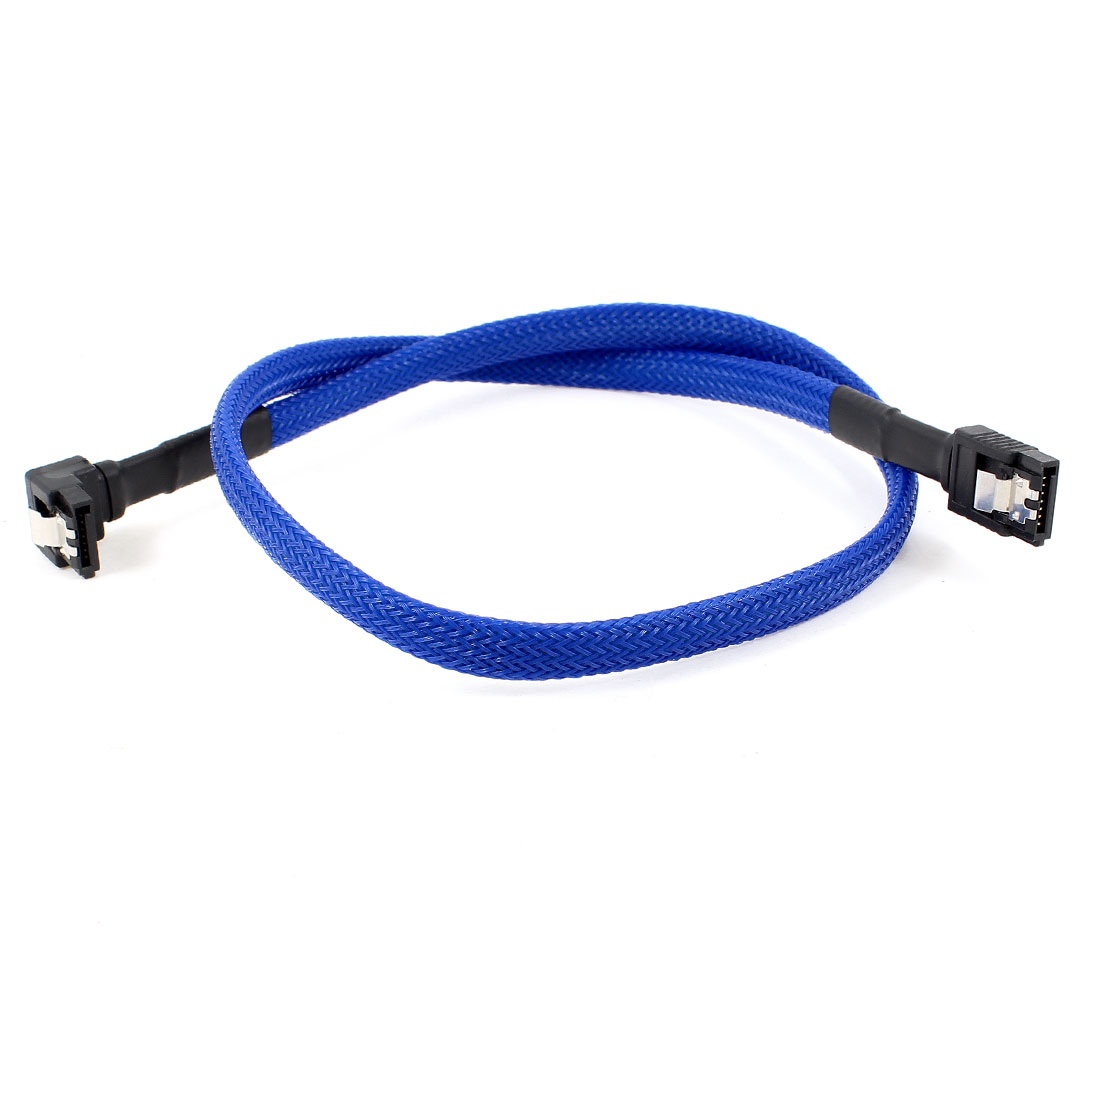 SATA 7 Pin Female to Right Angle 7 Pin Female HDD Data Cable Adapter Blue